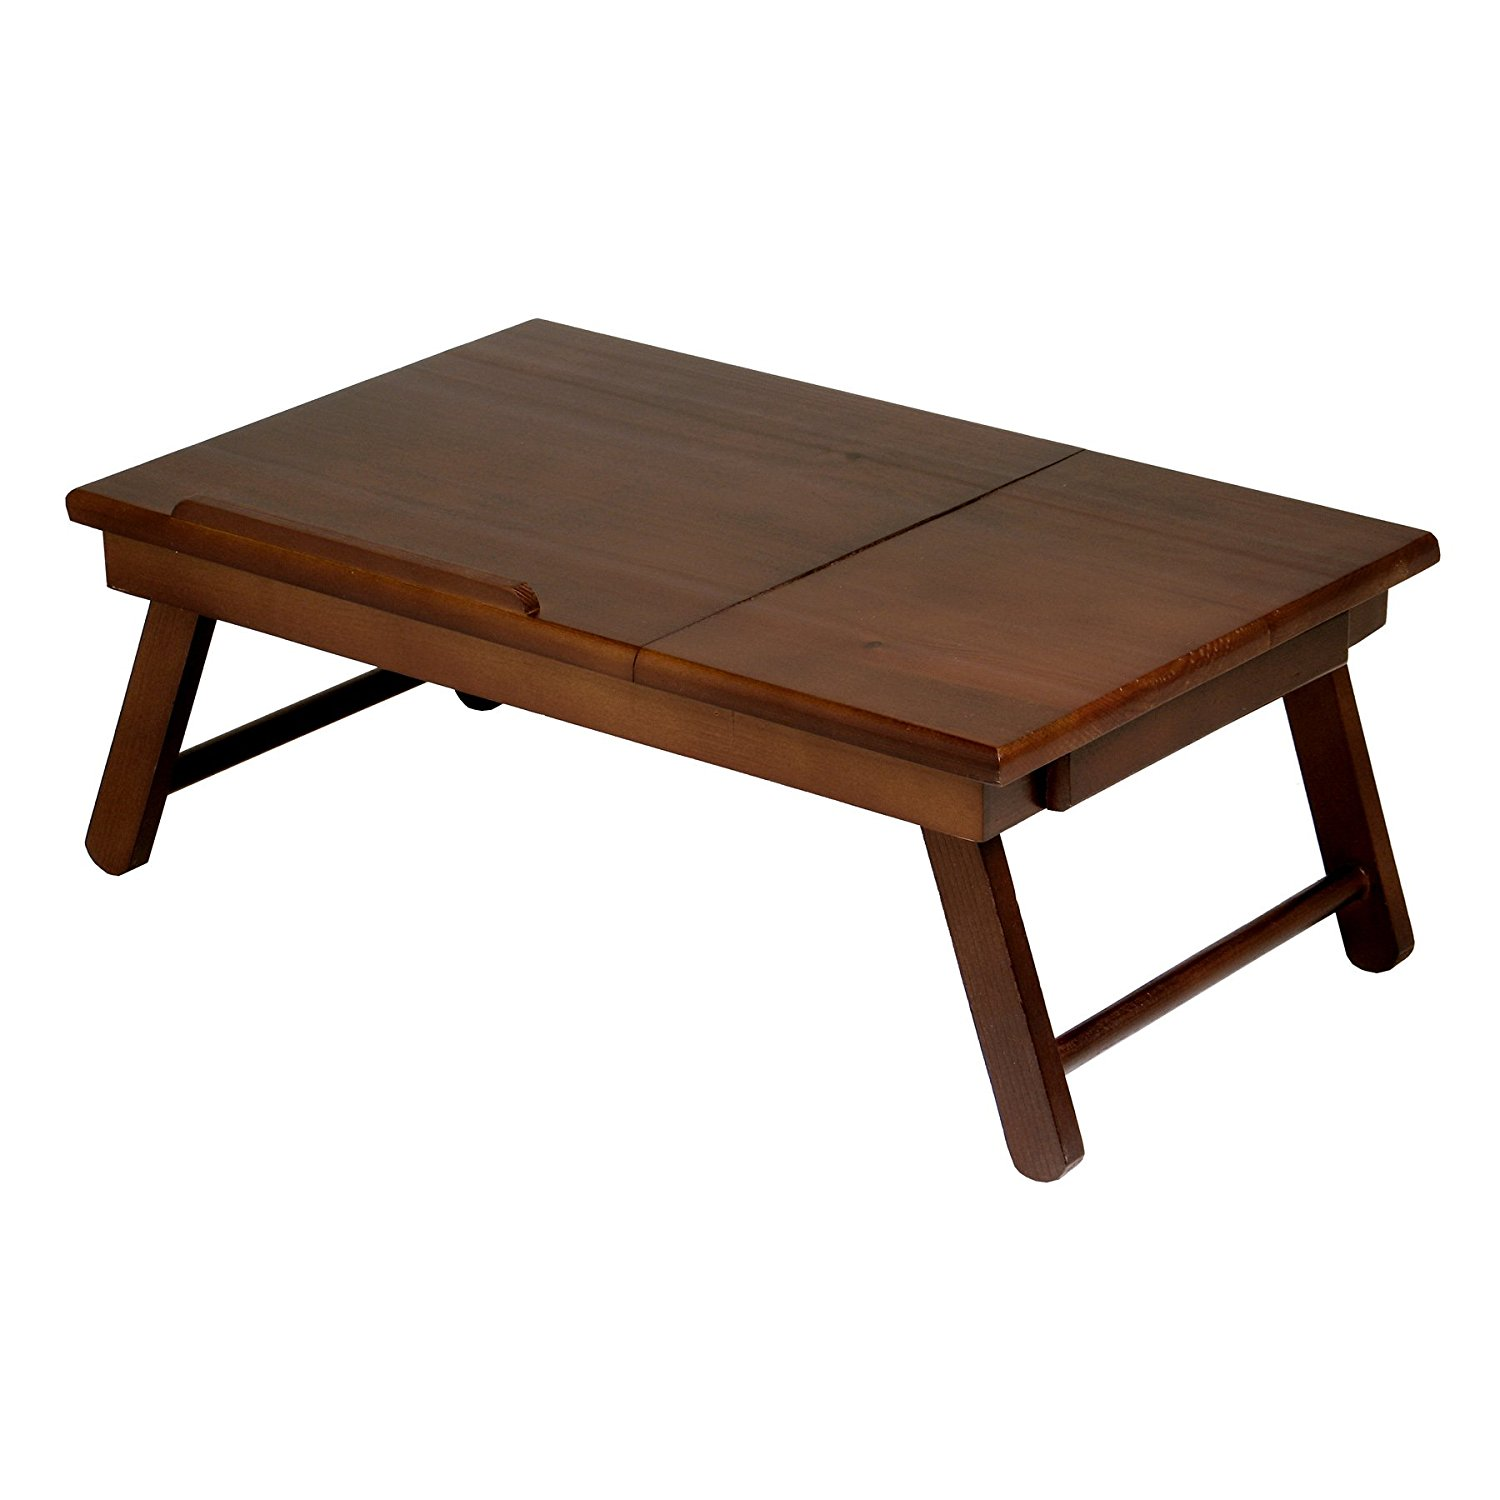 Alden Lap Desk, Flip Top with Drawer, Foldable Legs, Wood Lap Desk work station By Winsome Wood by